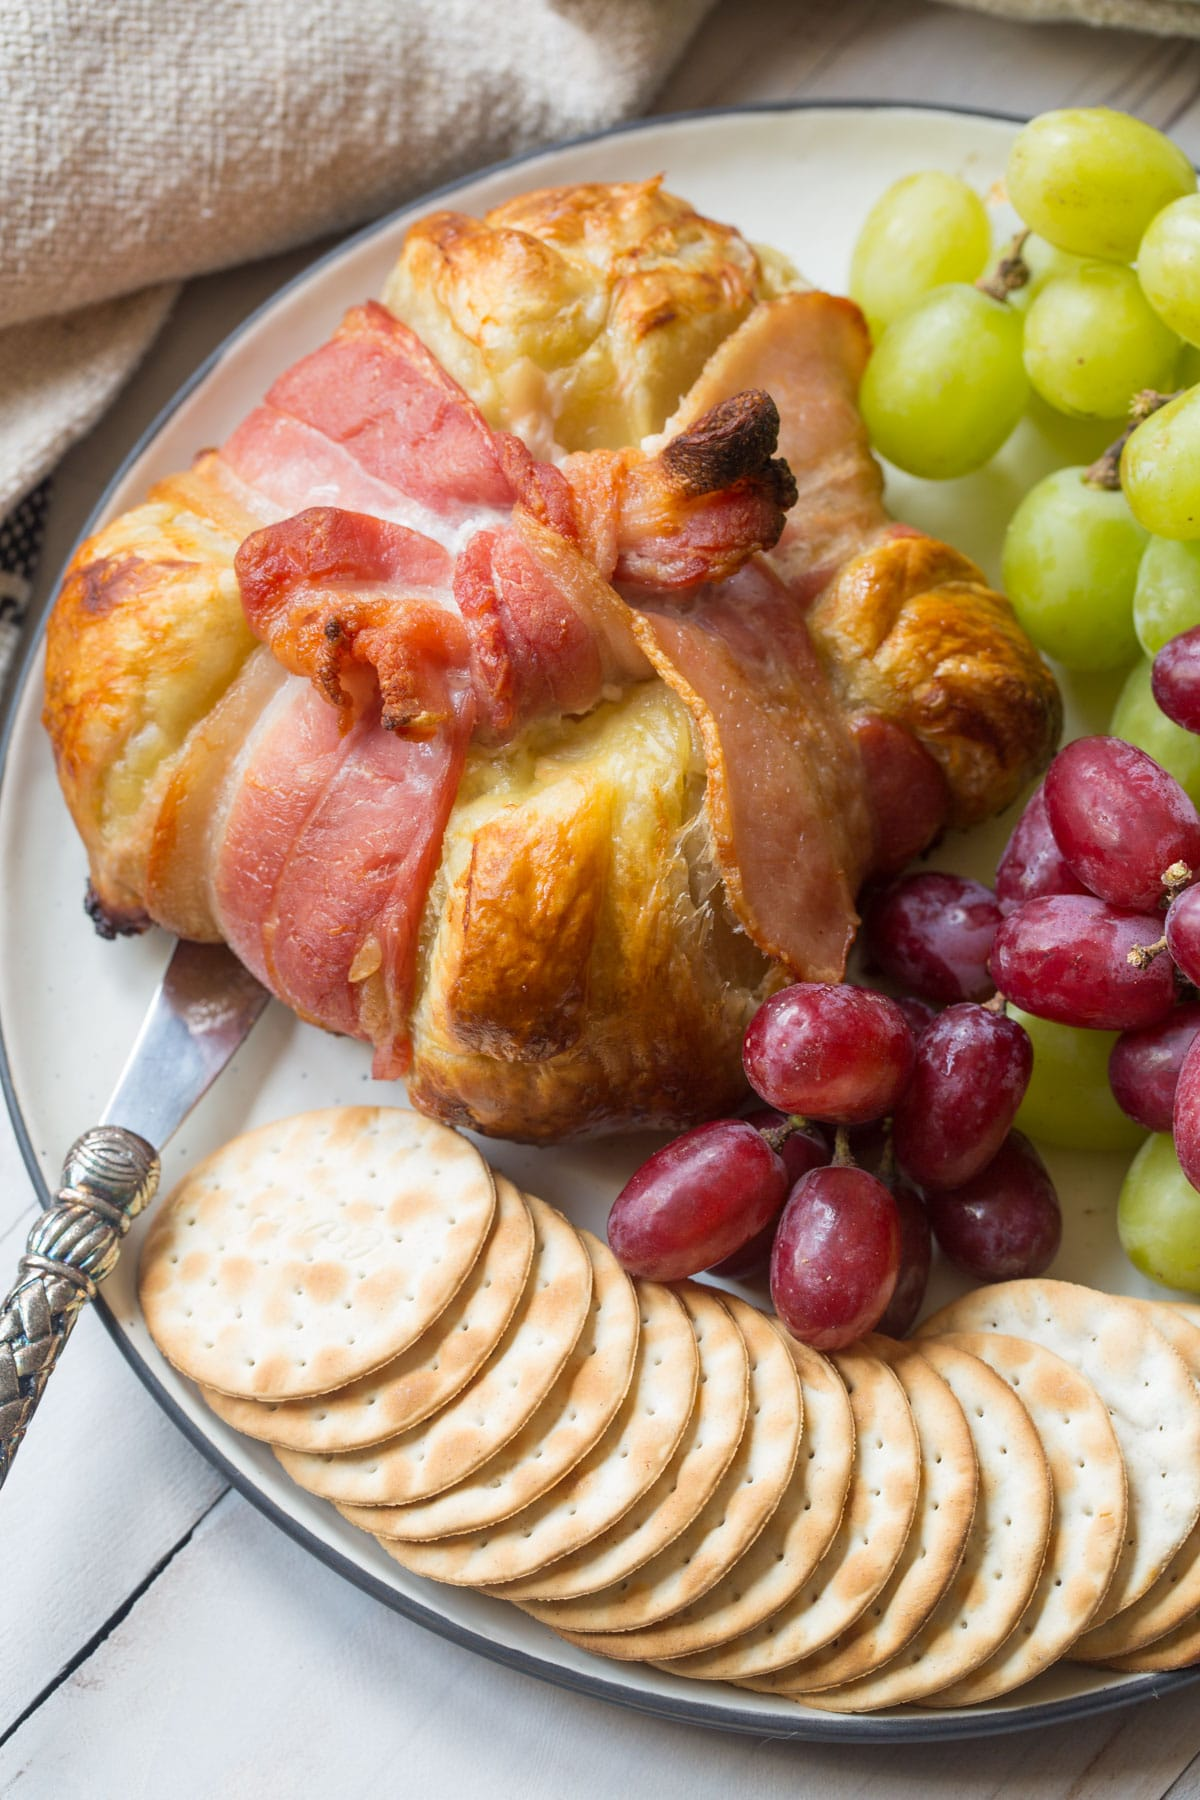 Easy Baked Brie in Puff Pastry Recipe #ASpicyPerspective #bakedbrie #holidays #christmas